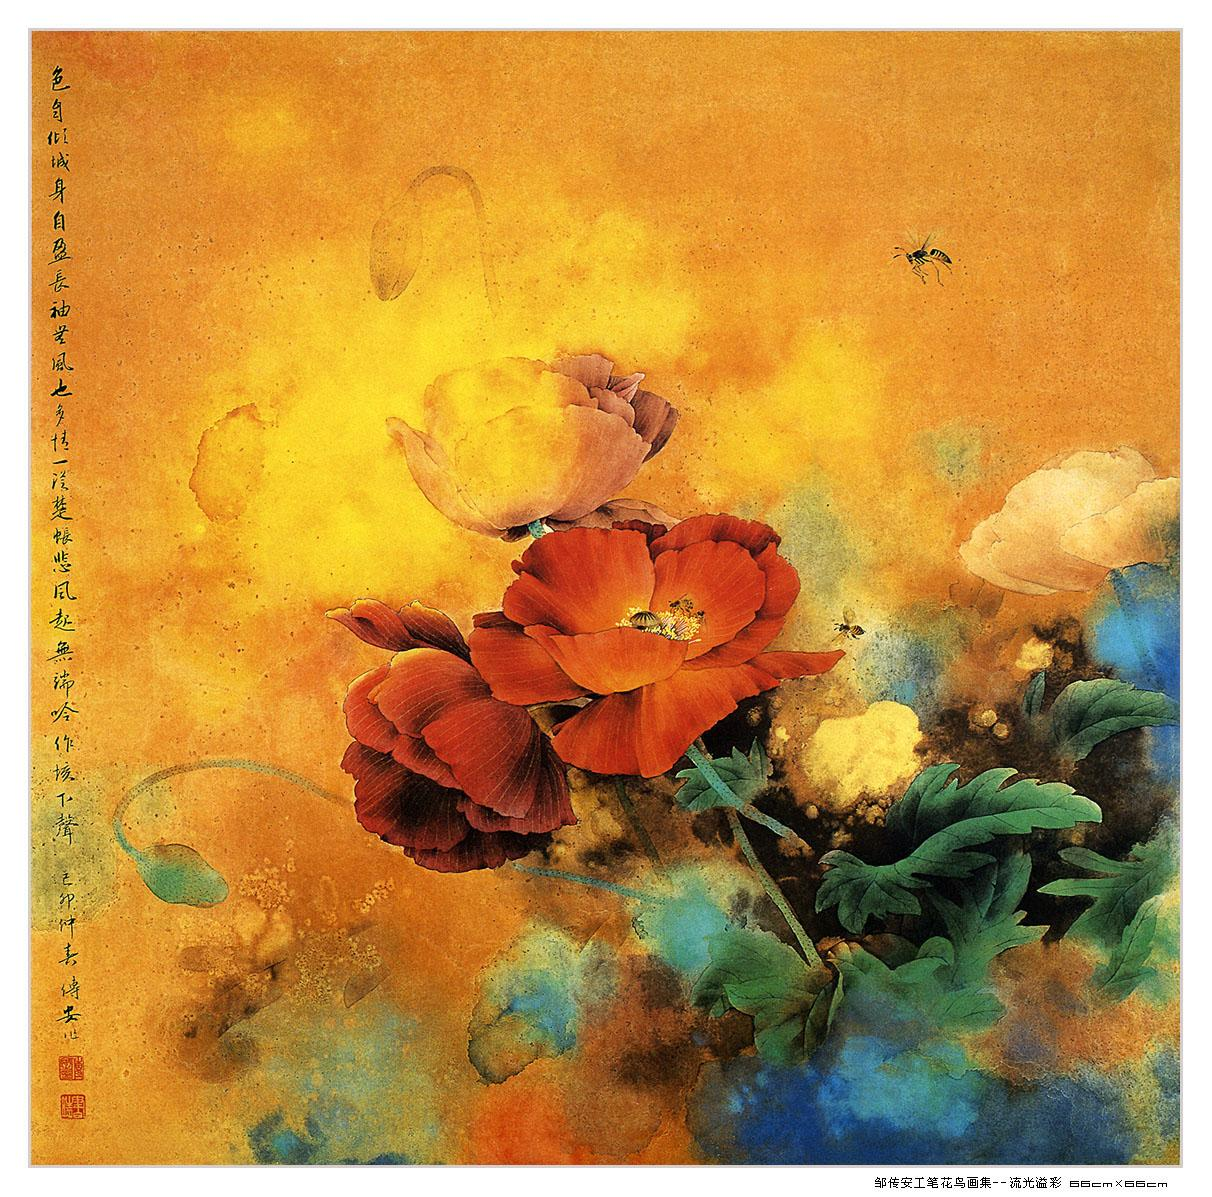 PHOTO AND PICTURE Chinese Art Painting 1212x1197